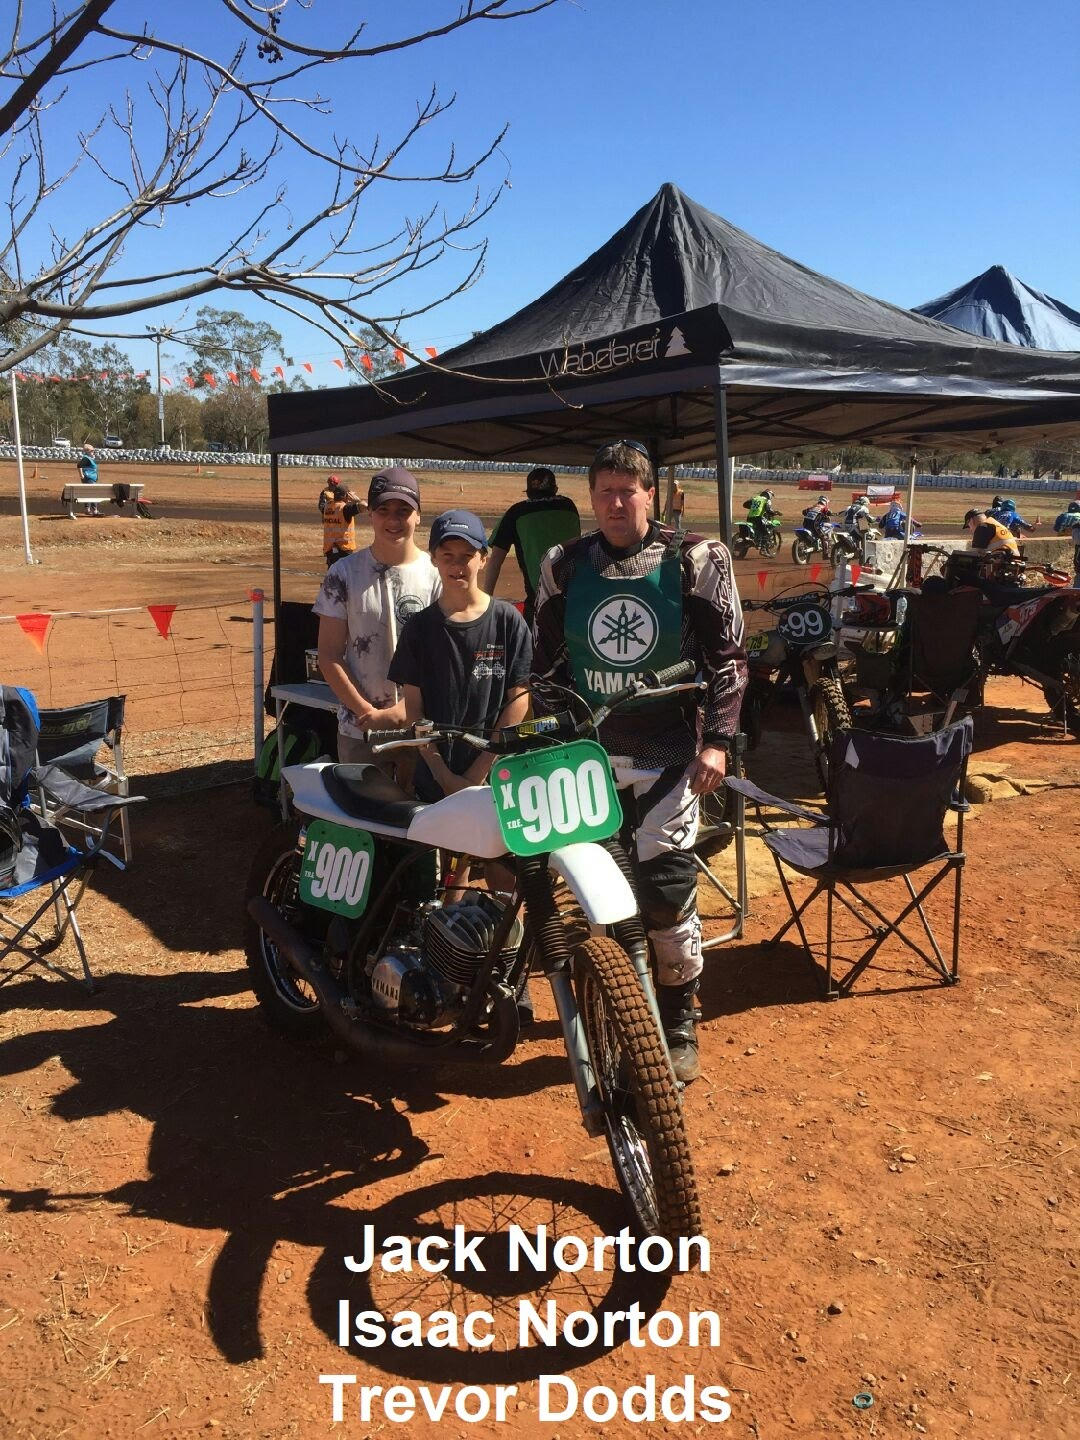 https://sites.google.com/a/leetonmotorcycleclub.com/lmcc/dirtracing-photos/2018.08.9-30%202018%20CLASSIC%20MASTERS%20Trevor%20Dodds%203rd%2045+%20250cc%20Caption.jpg